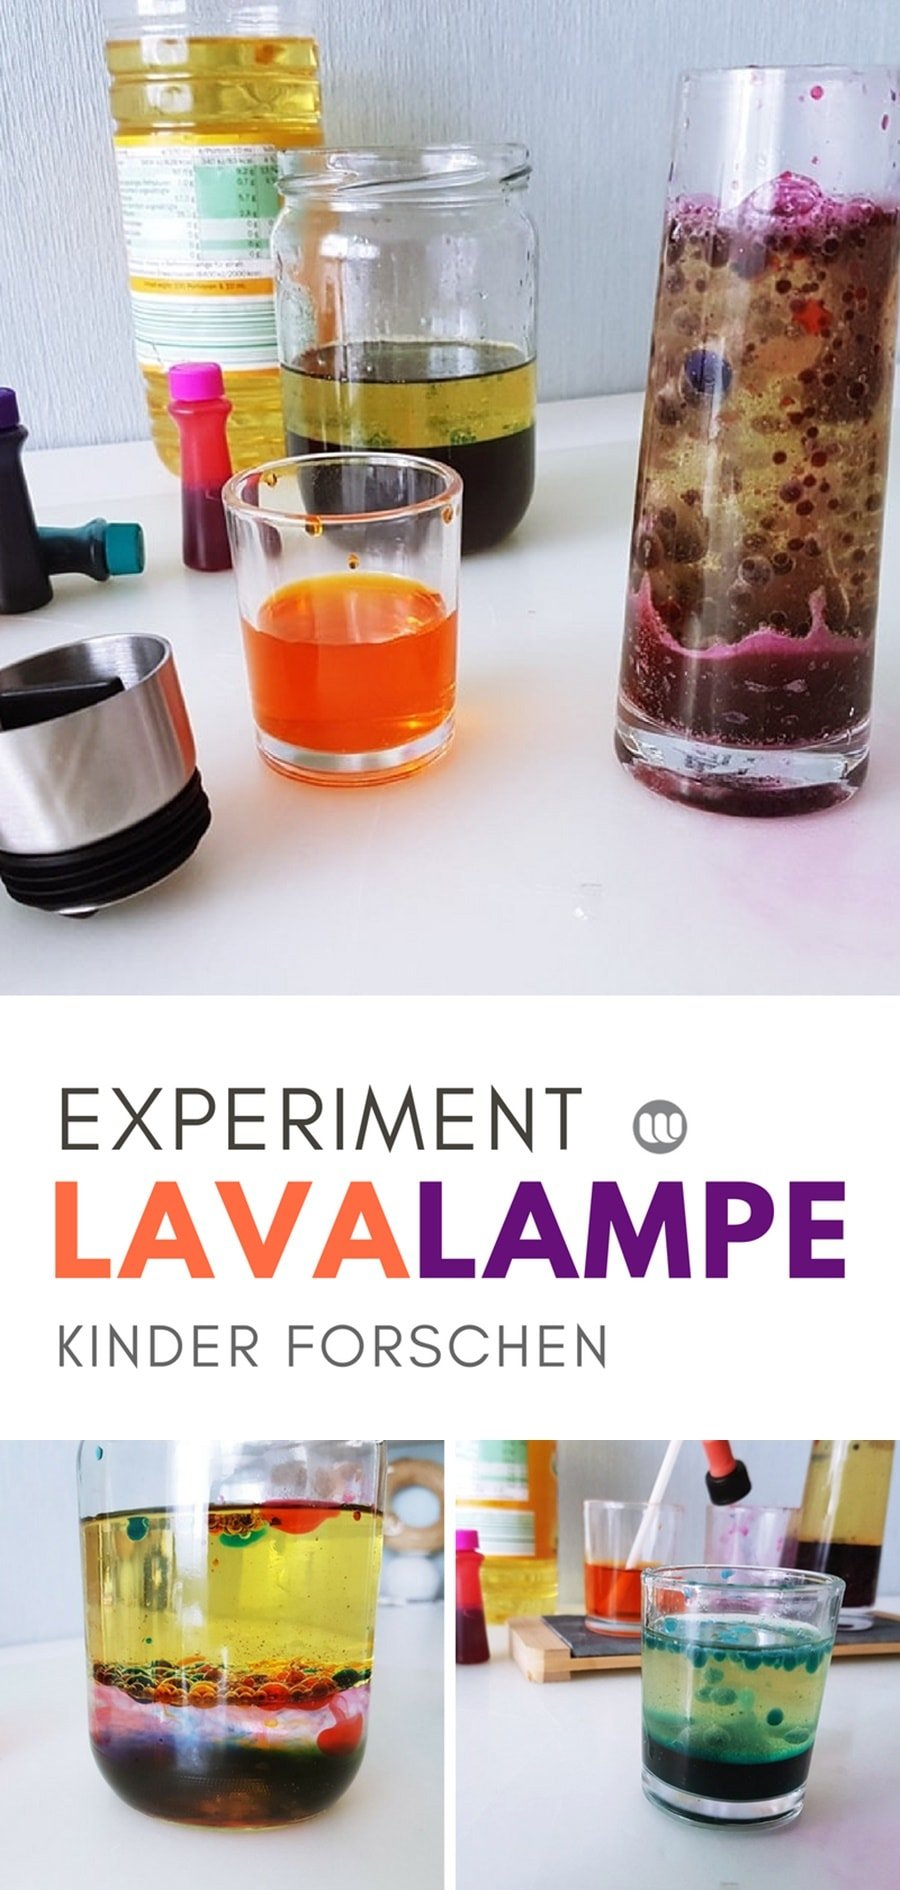 Lavalampe selbstgemacht Anleitung Kinder Experiment